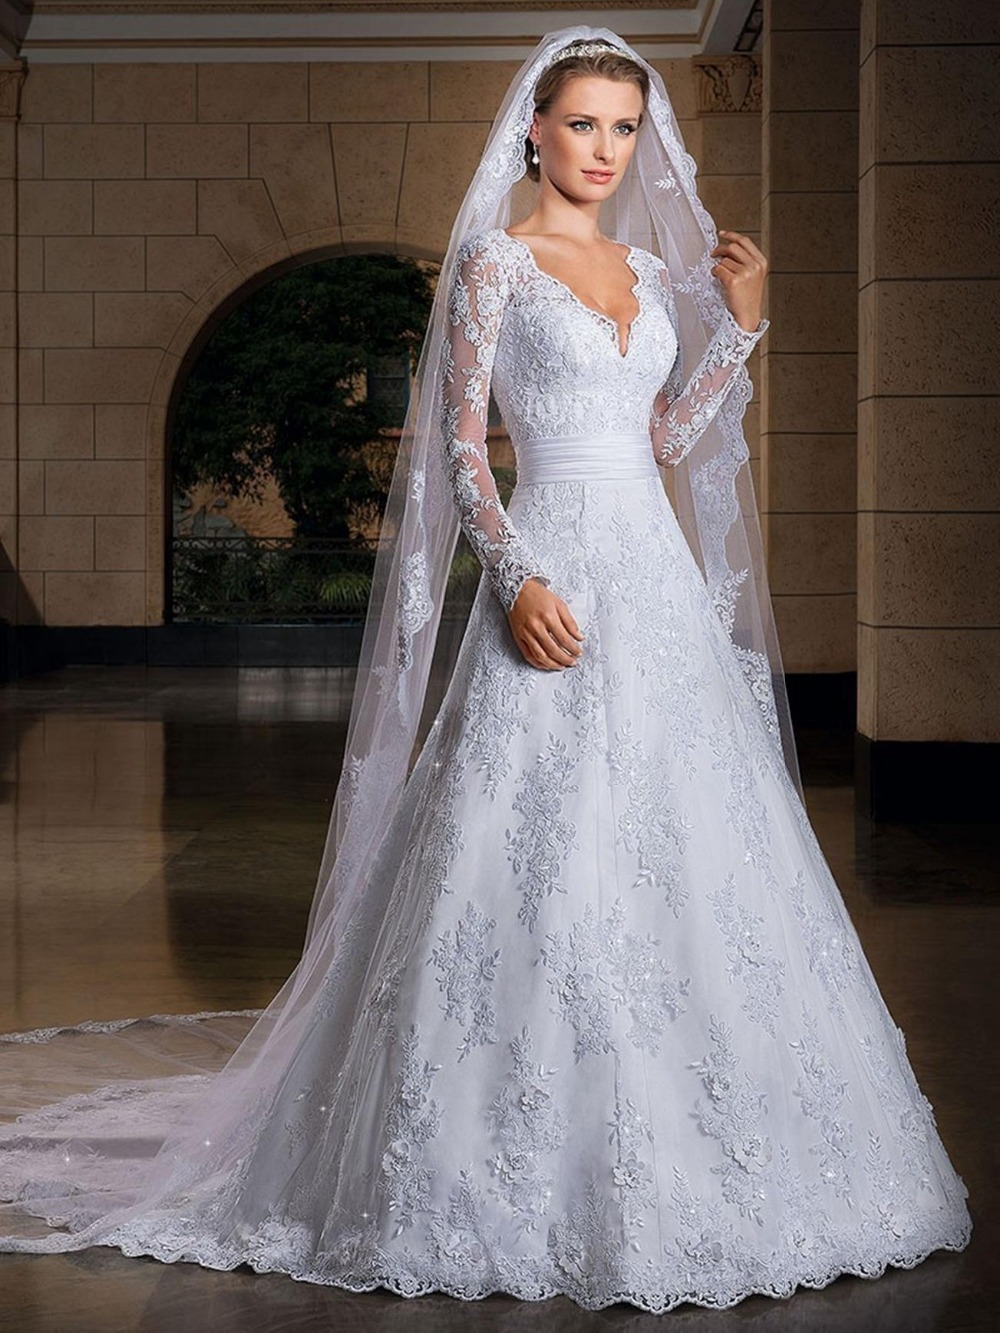 2016 Sexy Long Sleeve Lace Wedding Dresses Wedding Custom Made Bridal Gown Vestido de noiva with